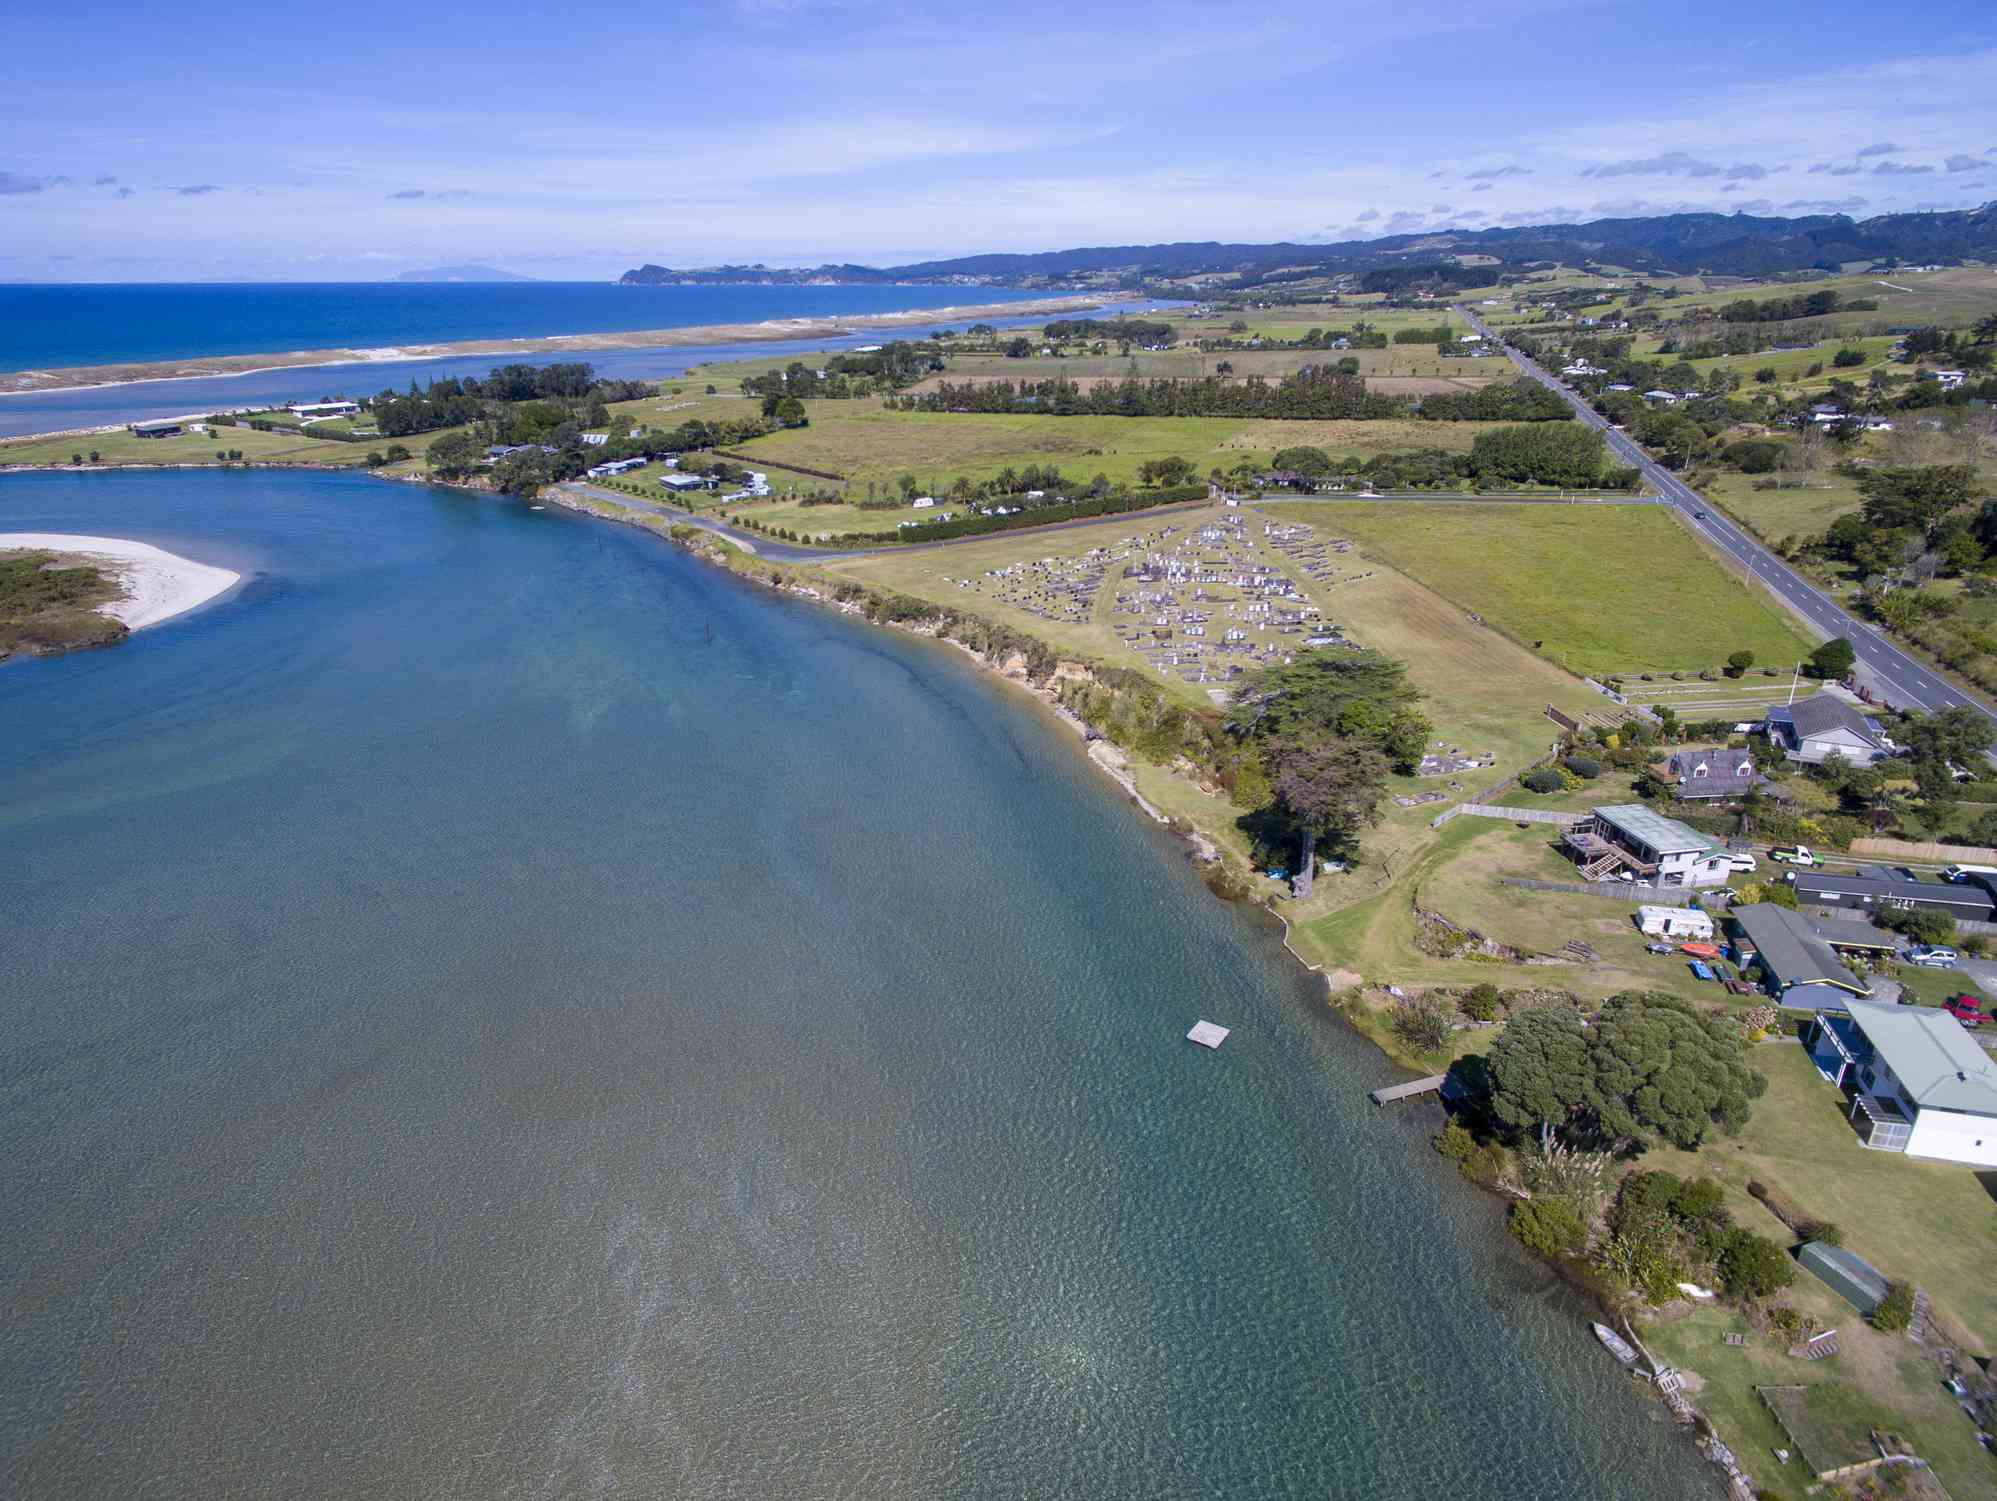 aerial view of Waipu new zealand with a body of water on the left side of the image and the town on the right